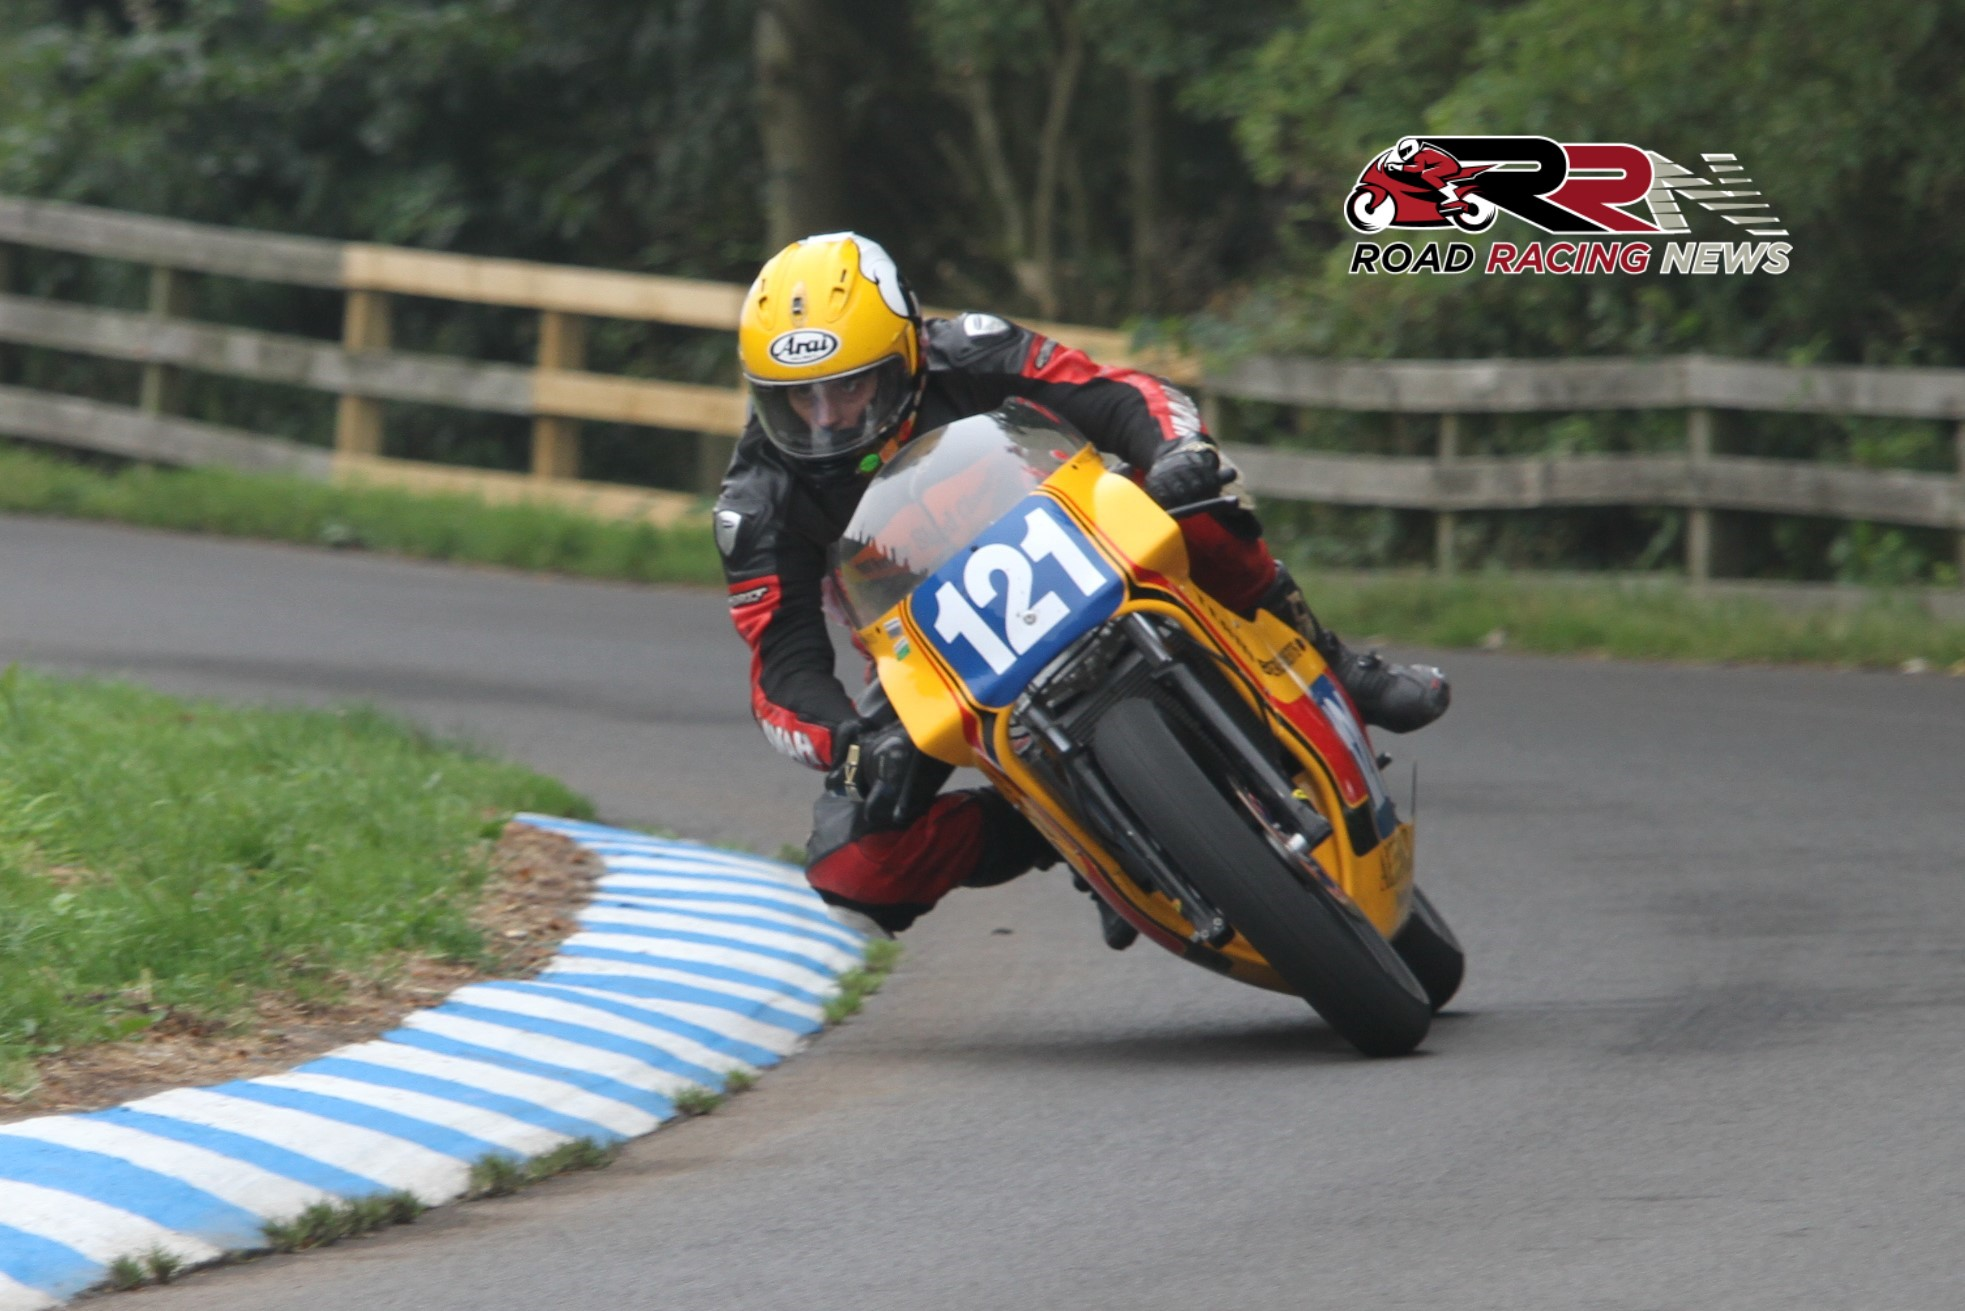 Barry Sheene Classic Preview – Part 5 – 350, 500, 750 All-Comers